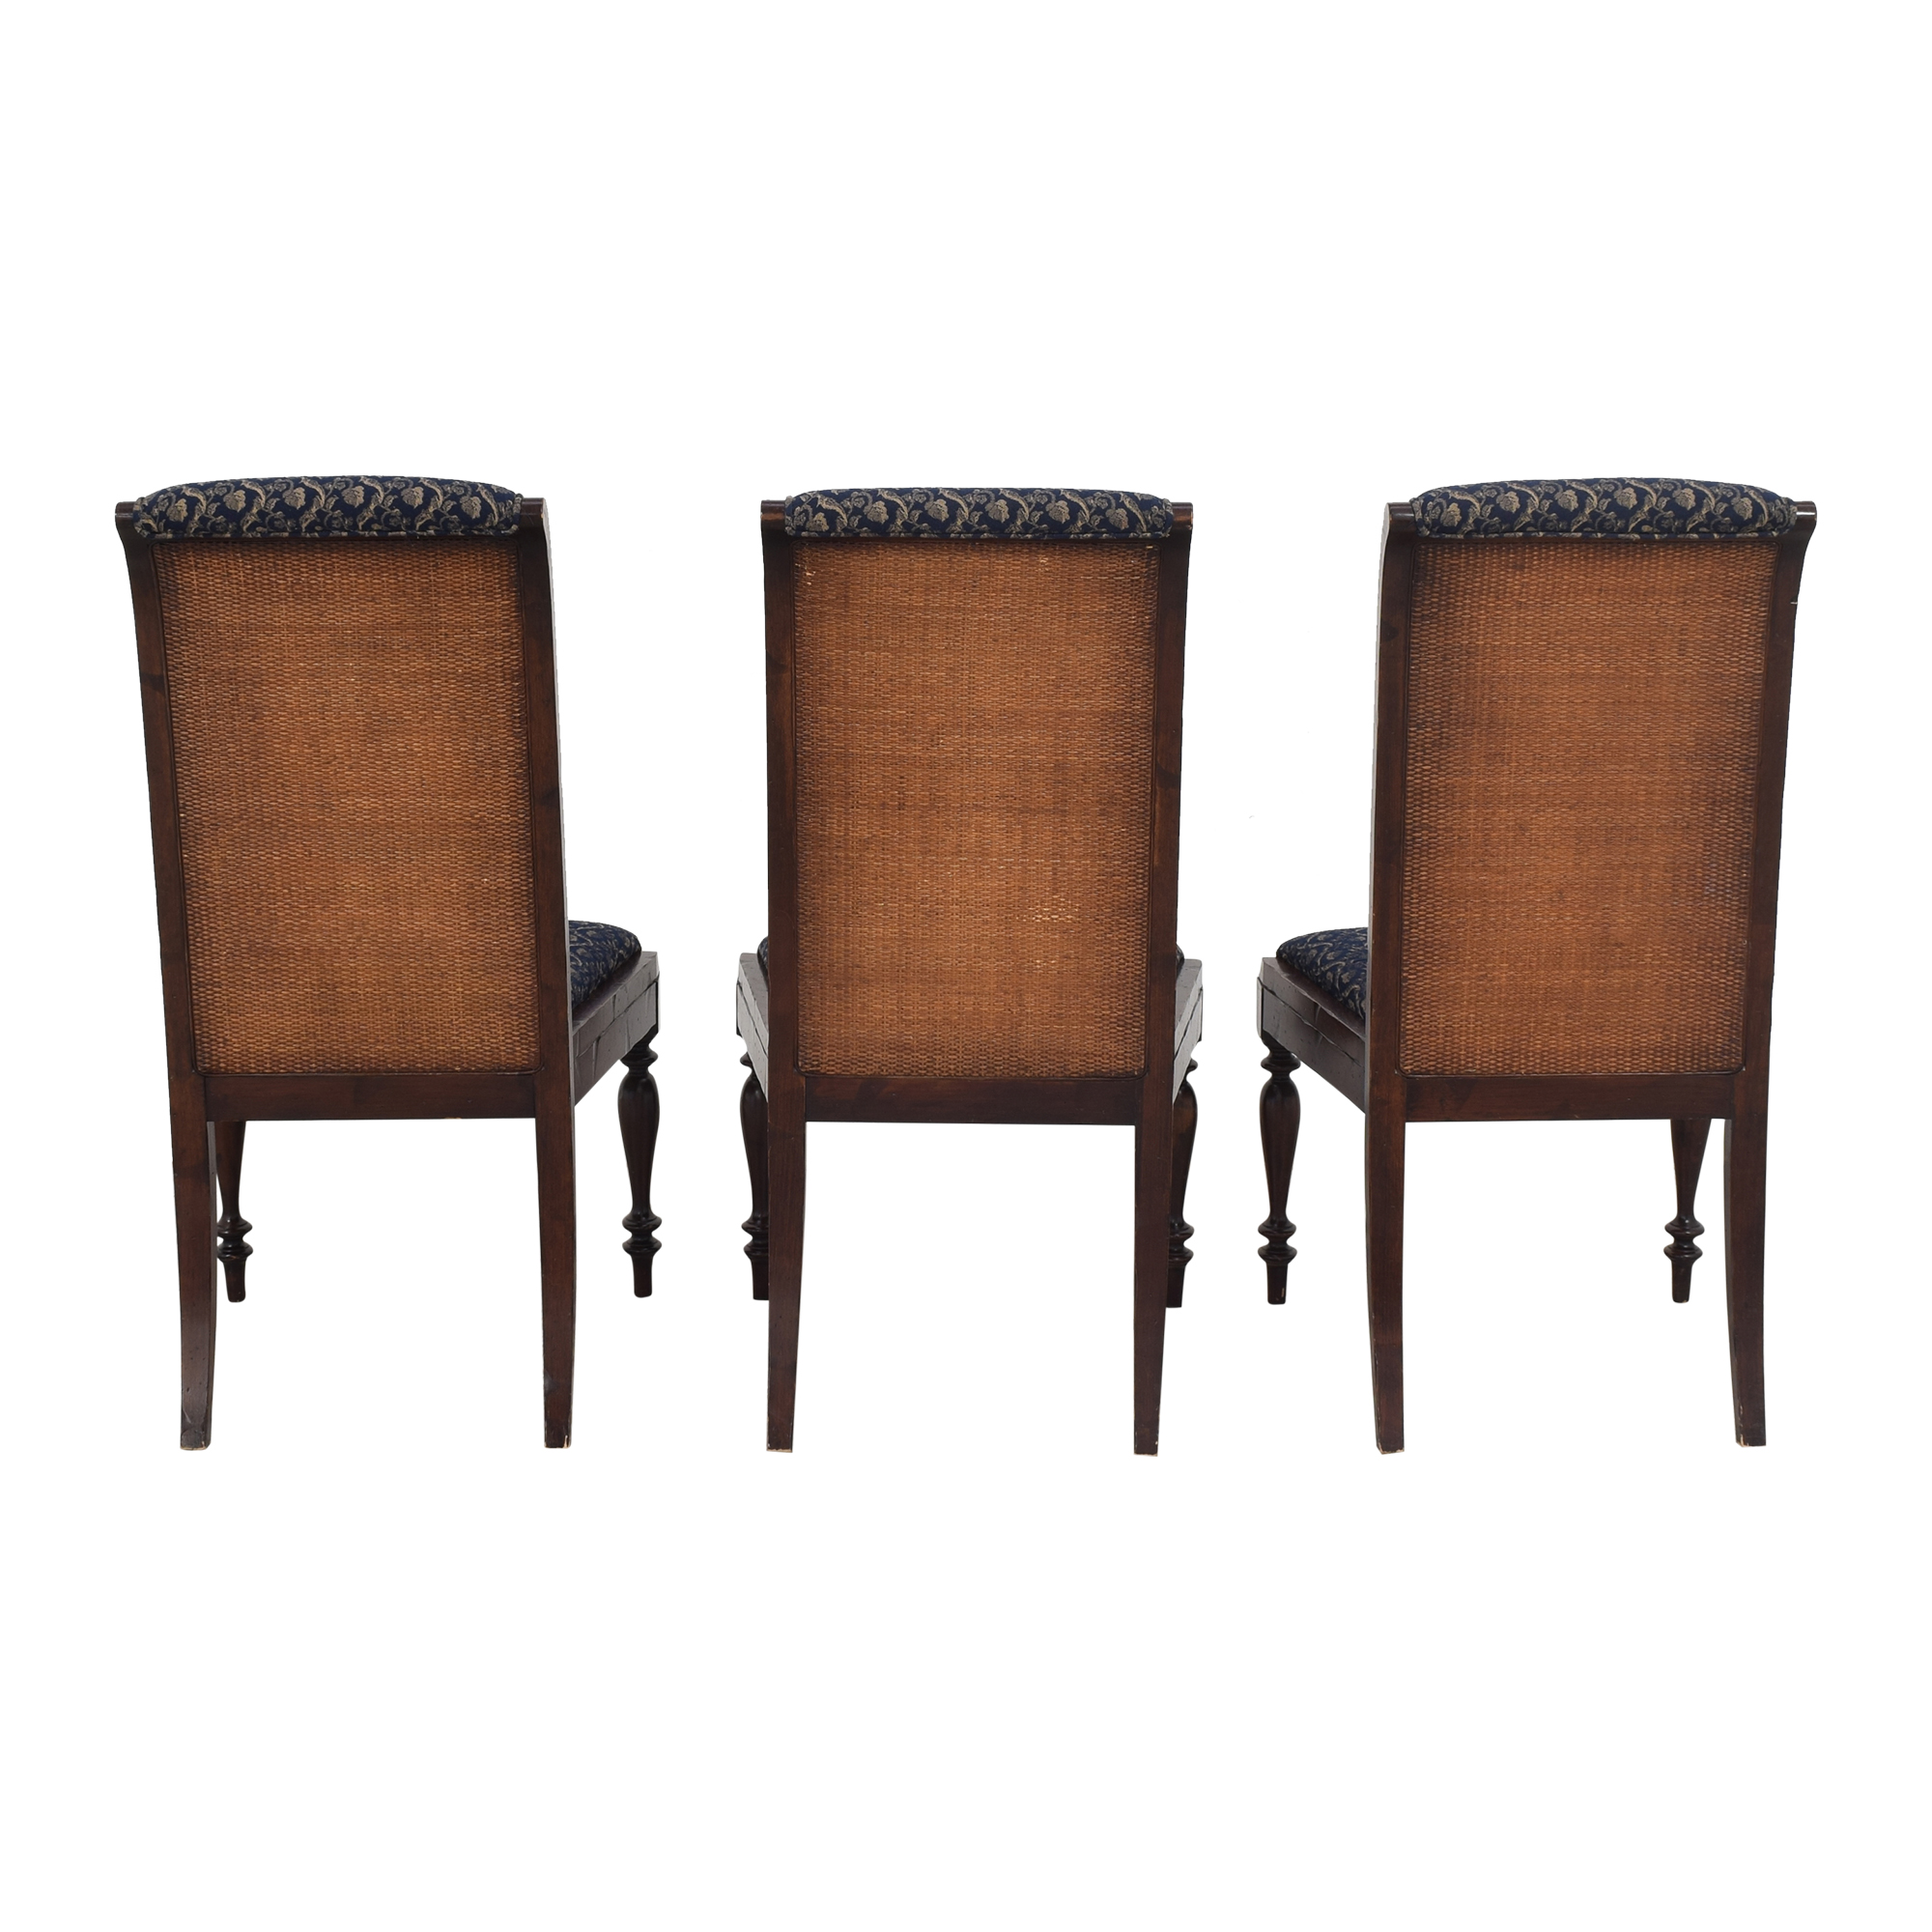 Sacchetto Fratelli Upholstered High Back Dining Chairs / Dining Chairs